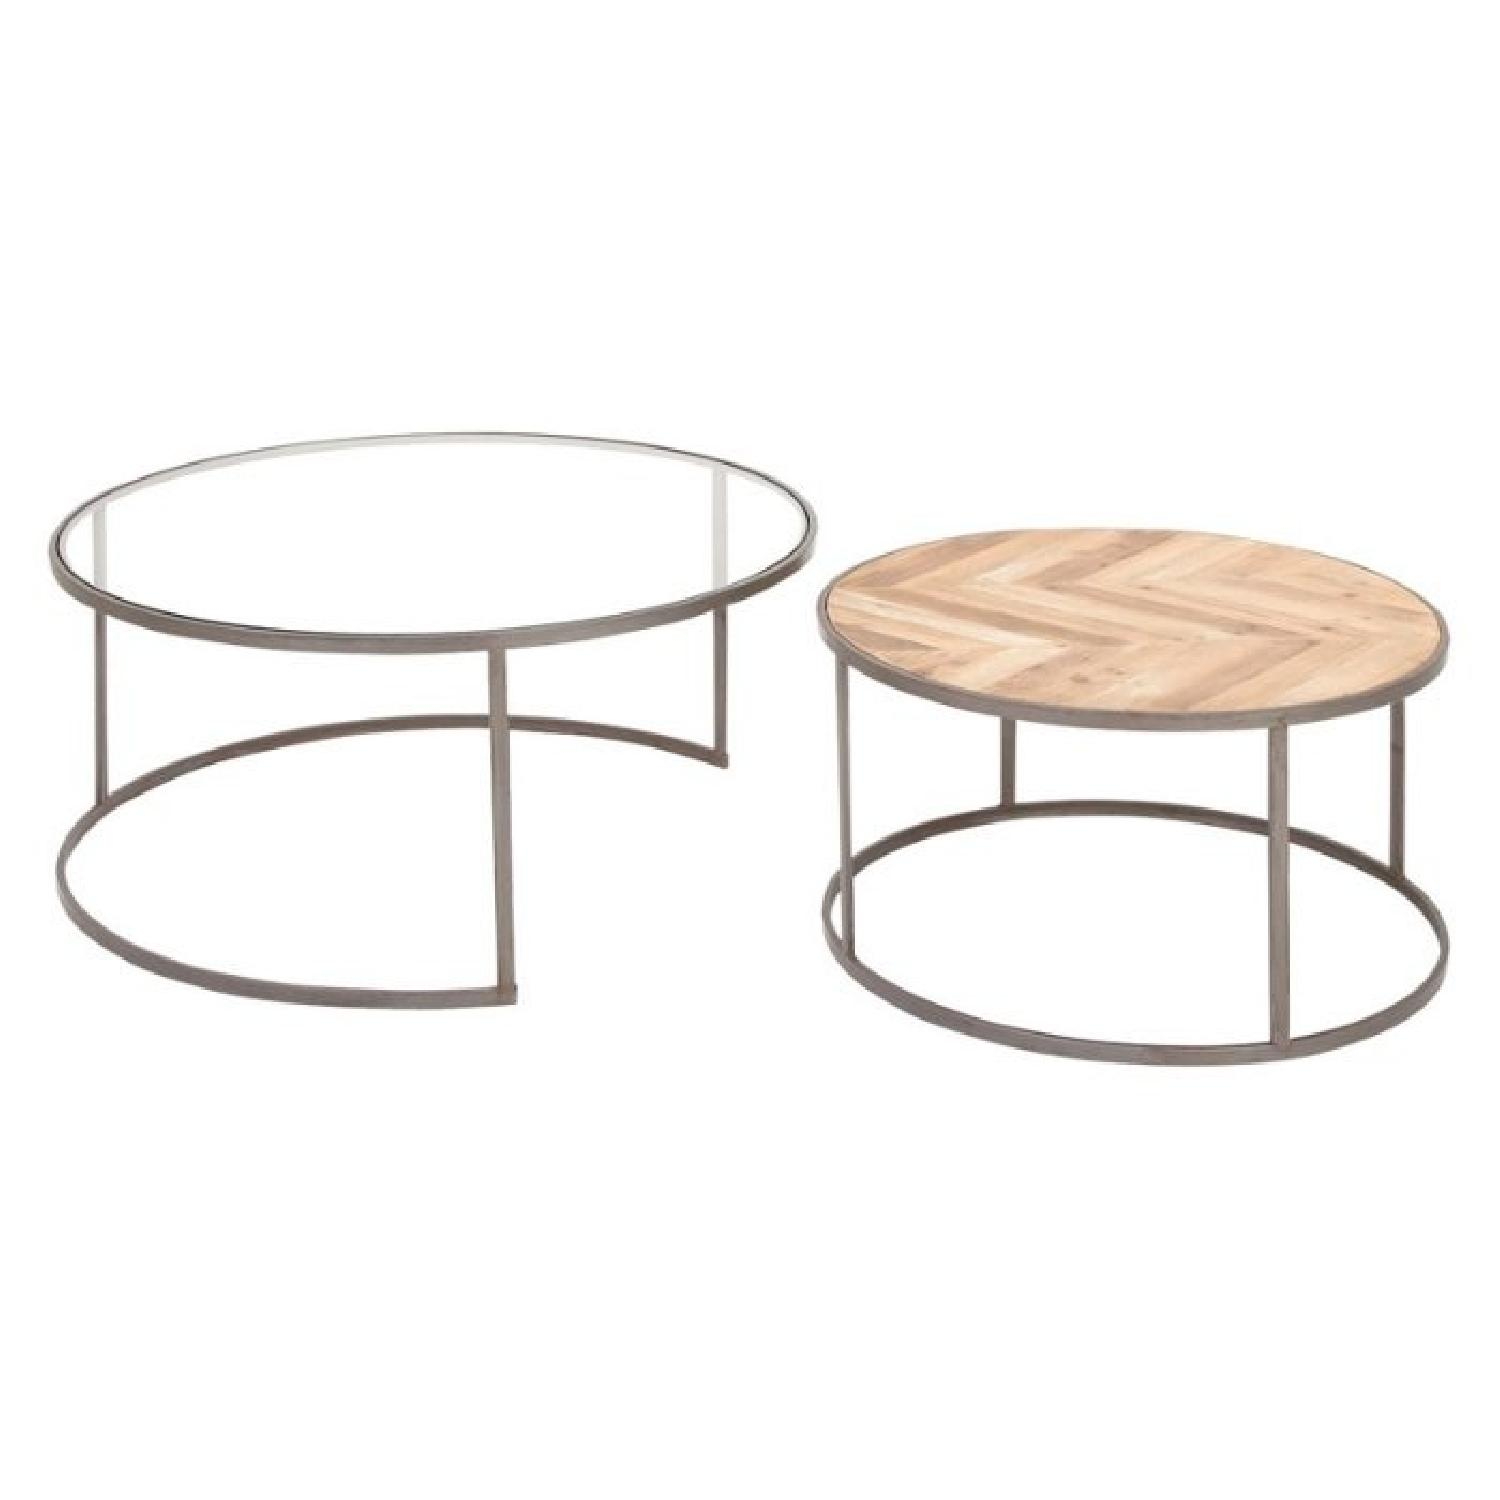 DecMode Round Rustic Contemporary Coffee Tables